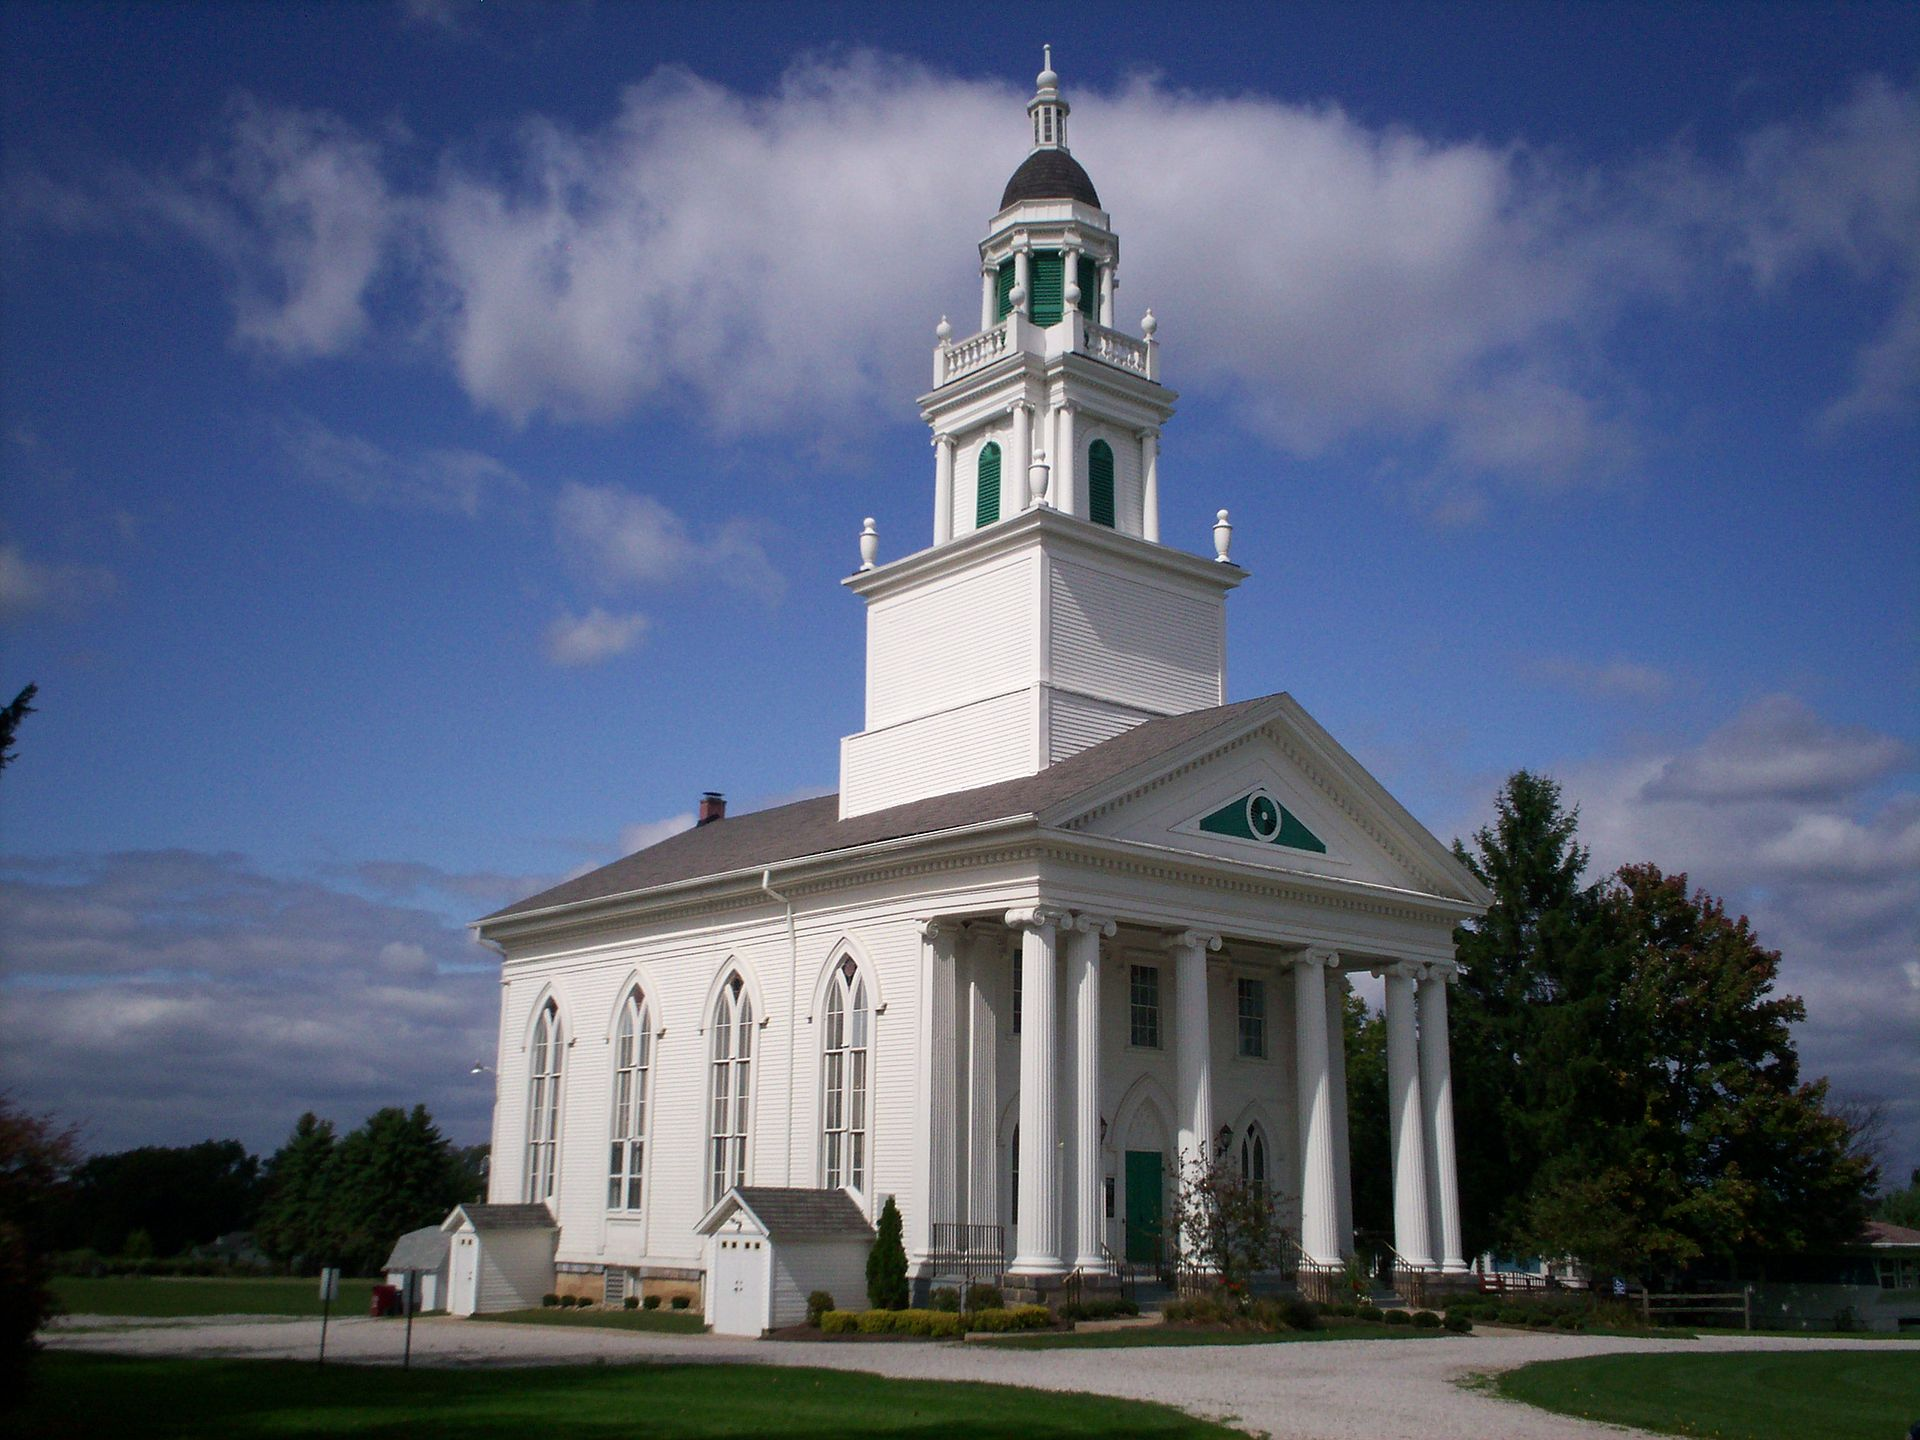 Atwater Congregational as it looks today